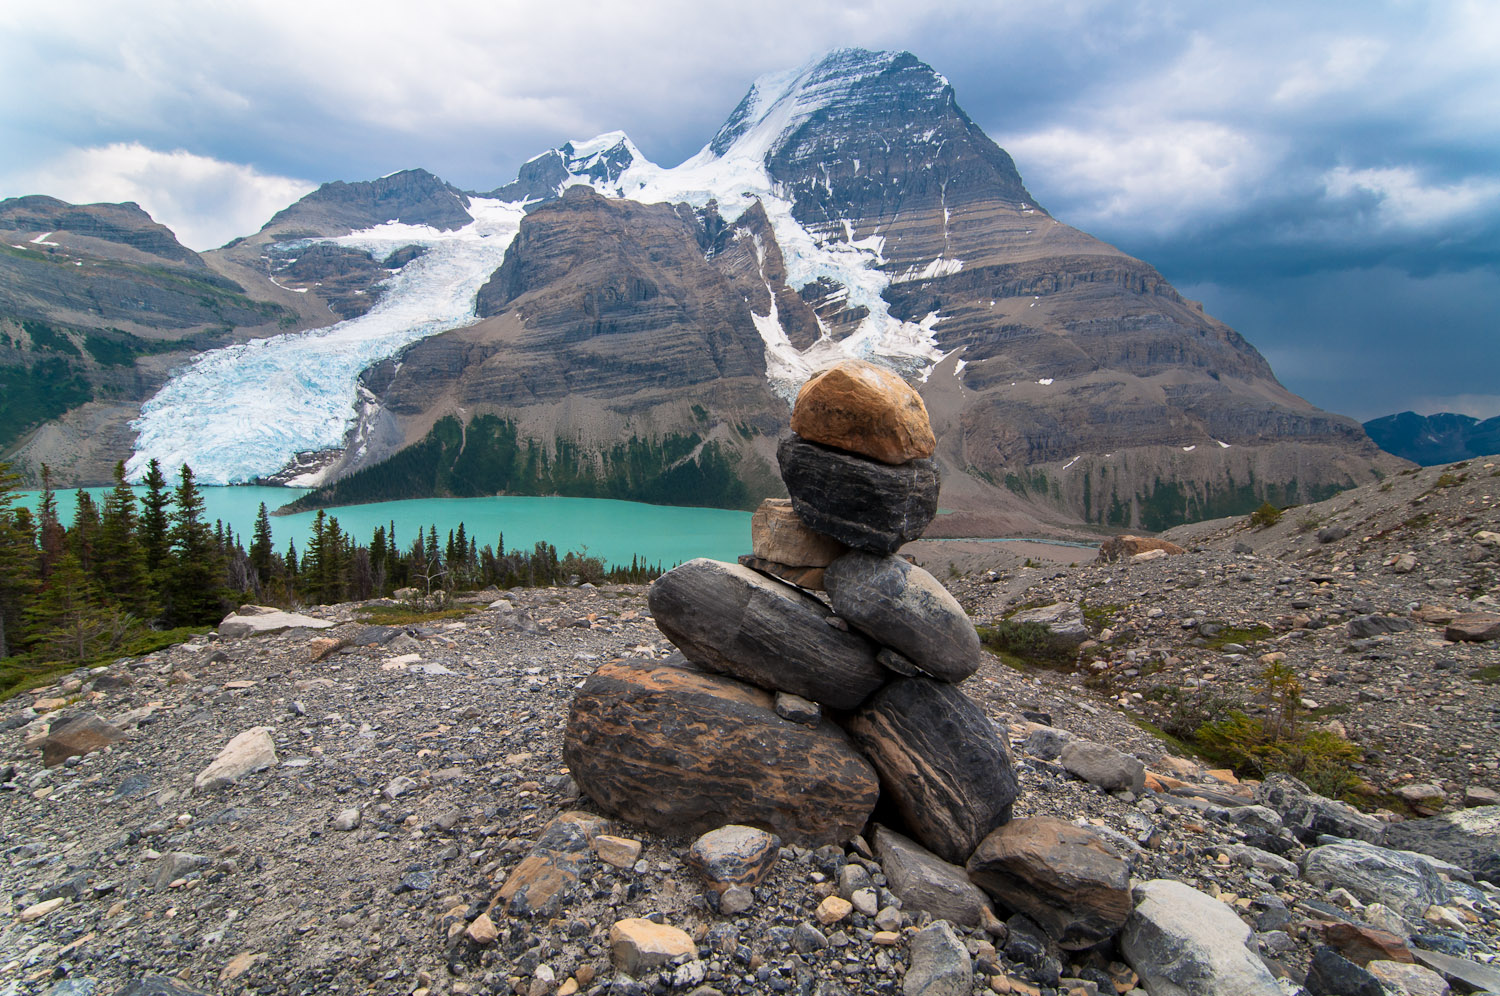 A cairn on the trail as we look down on Berg Lake, Berg & Mist glacier, as a storm rolls in over Mt Robson.